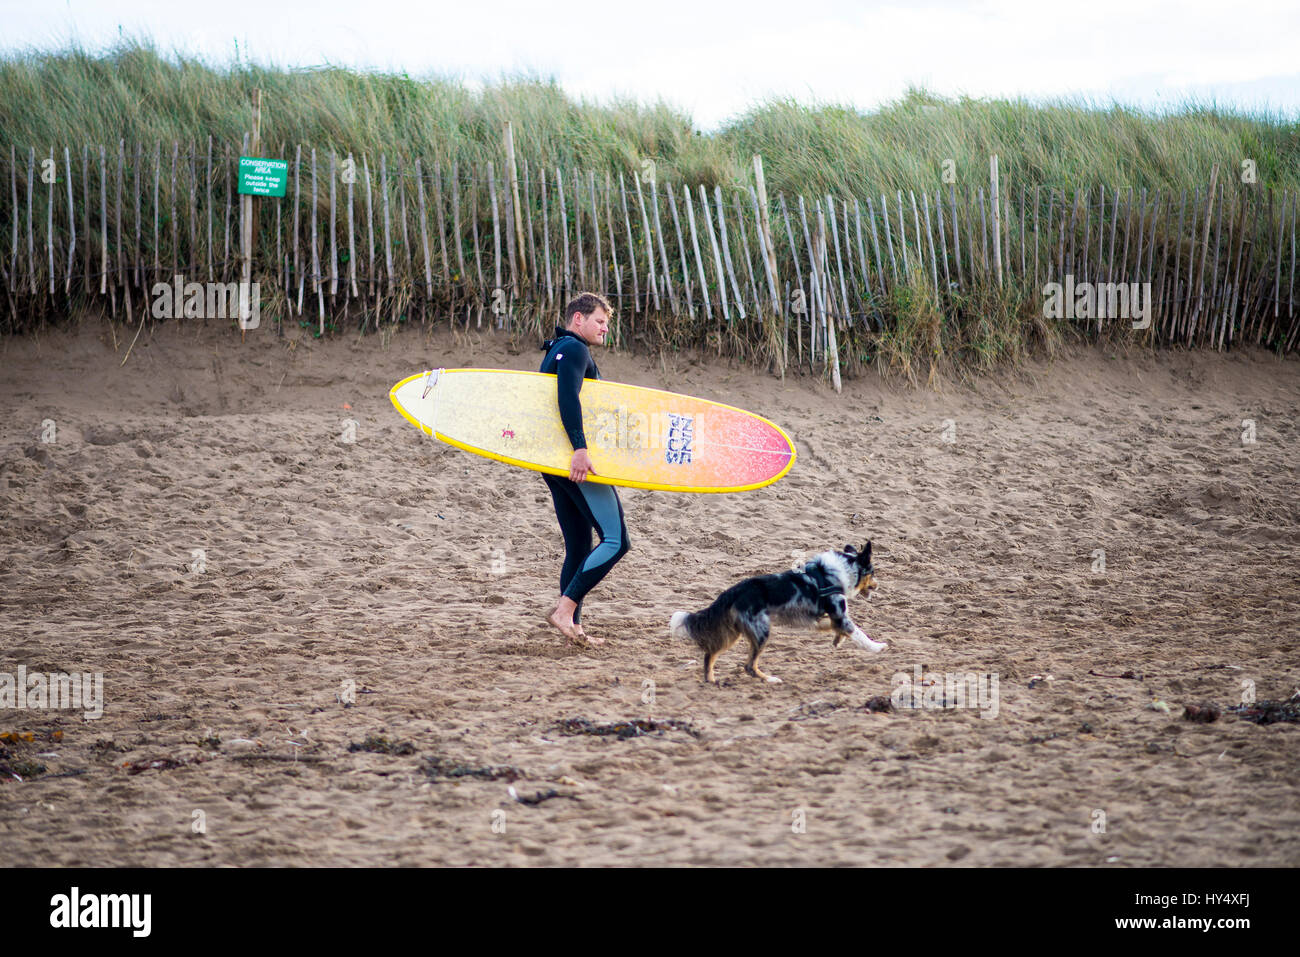 Male surfer with his dog at Bantham beach in Devon, England - Stock Image